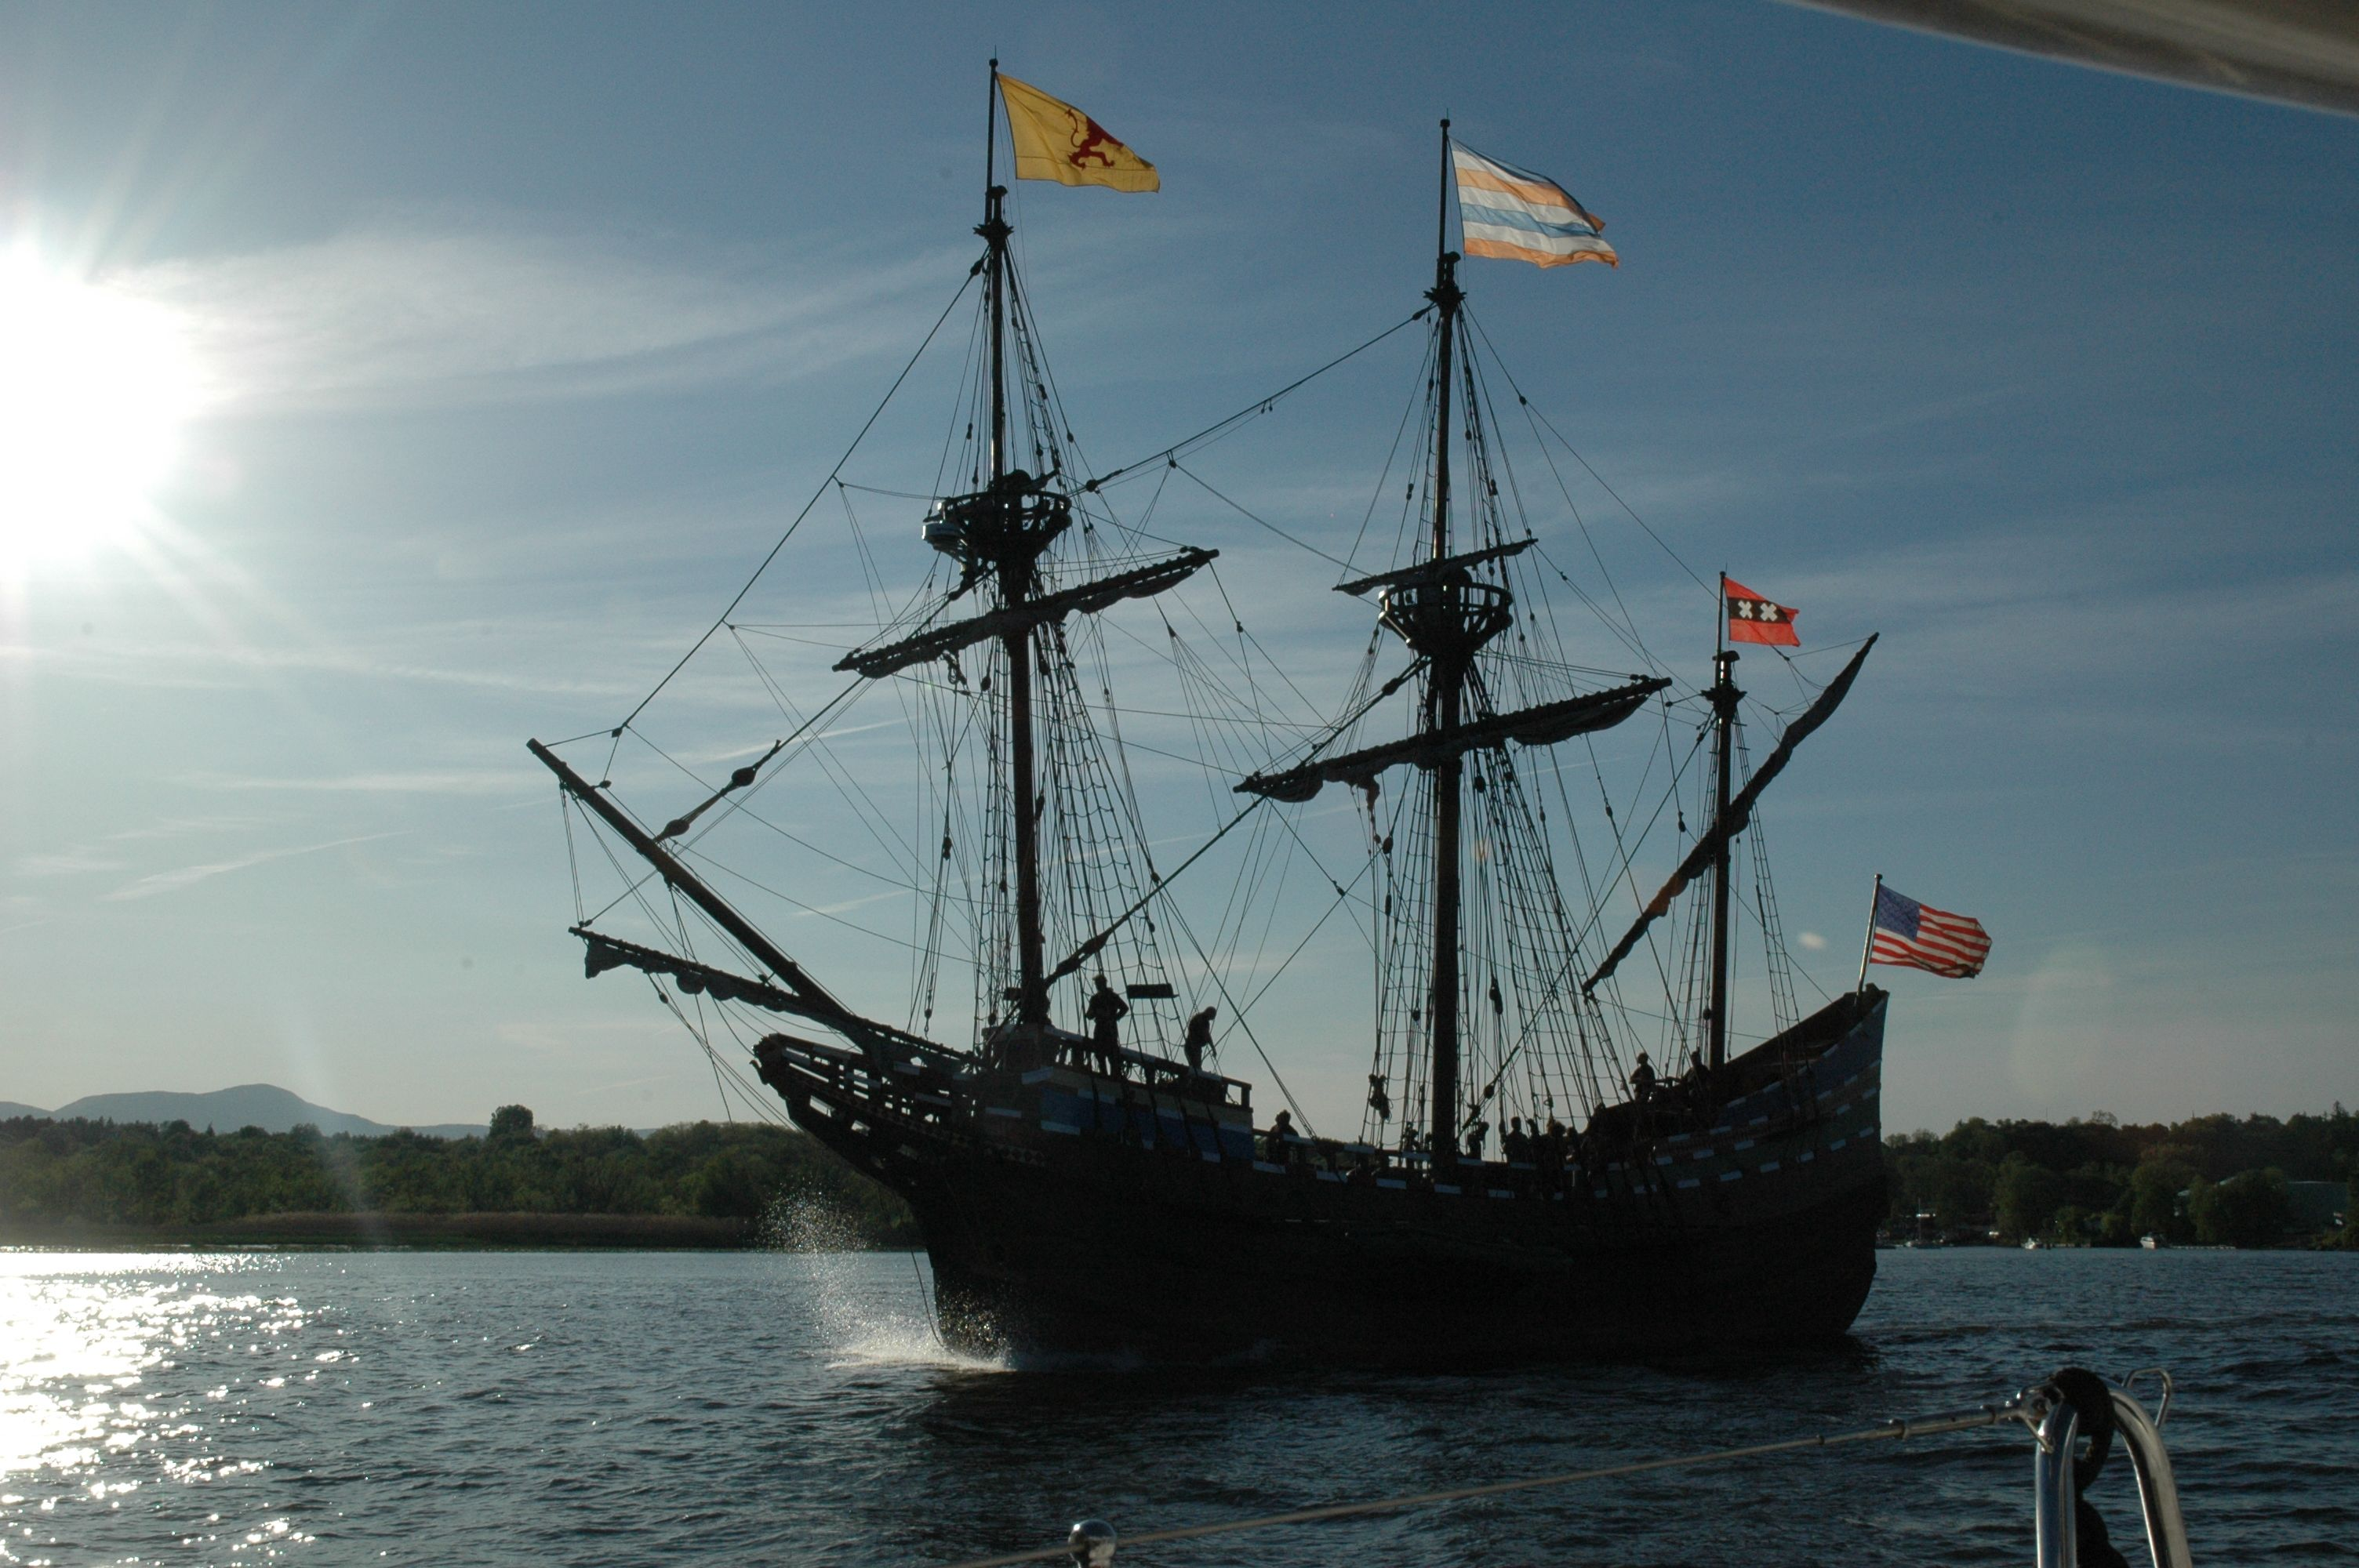 Vintage Replica to commemorate the 400th anniversary of the Hudson River in 2009.